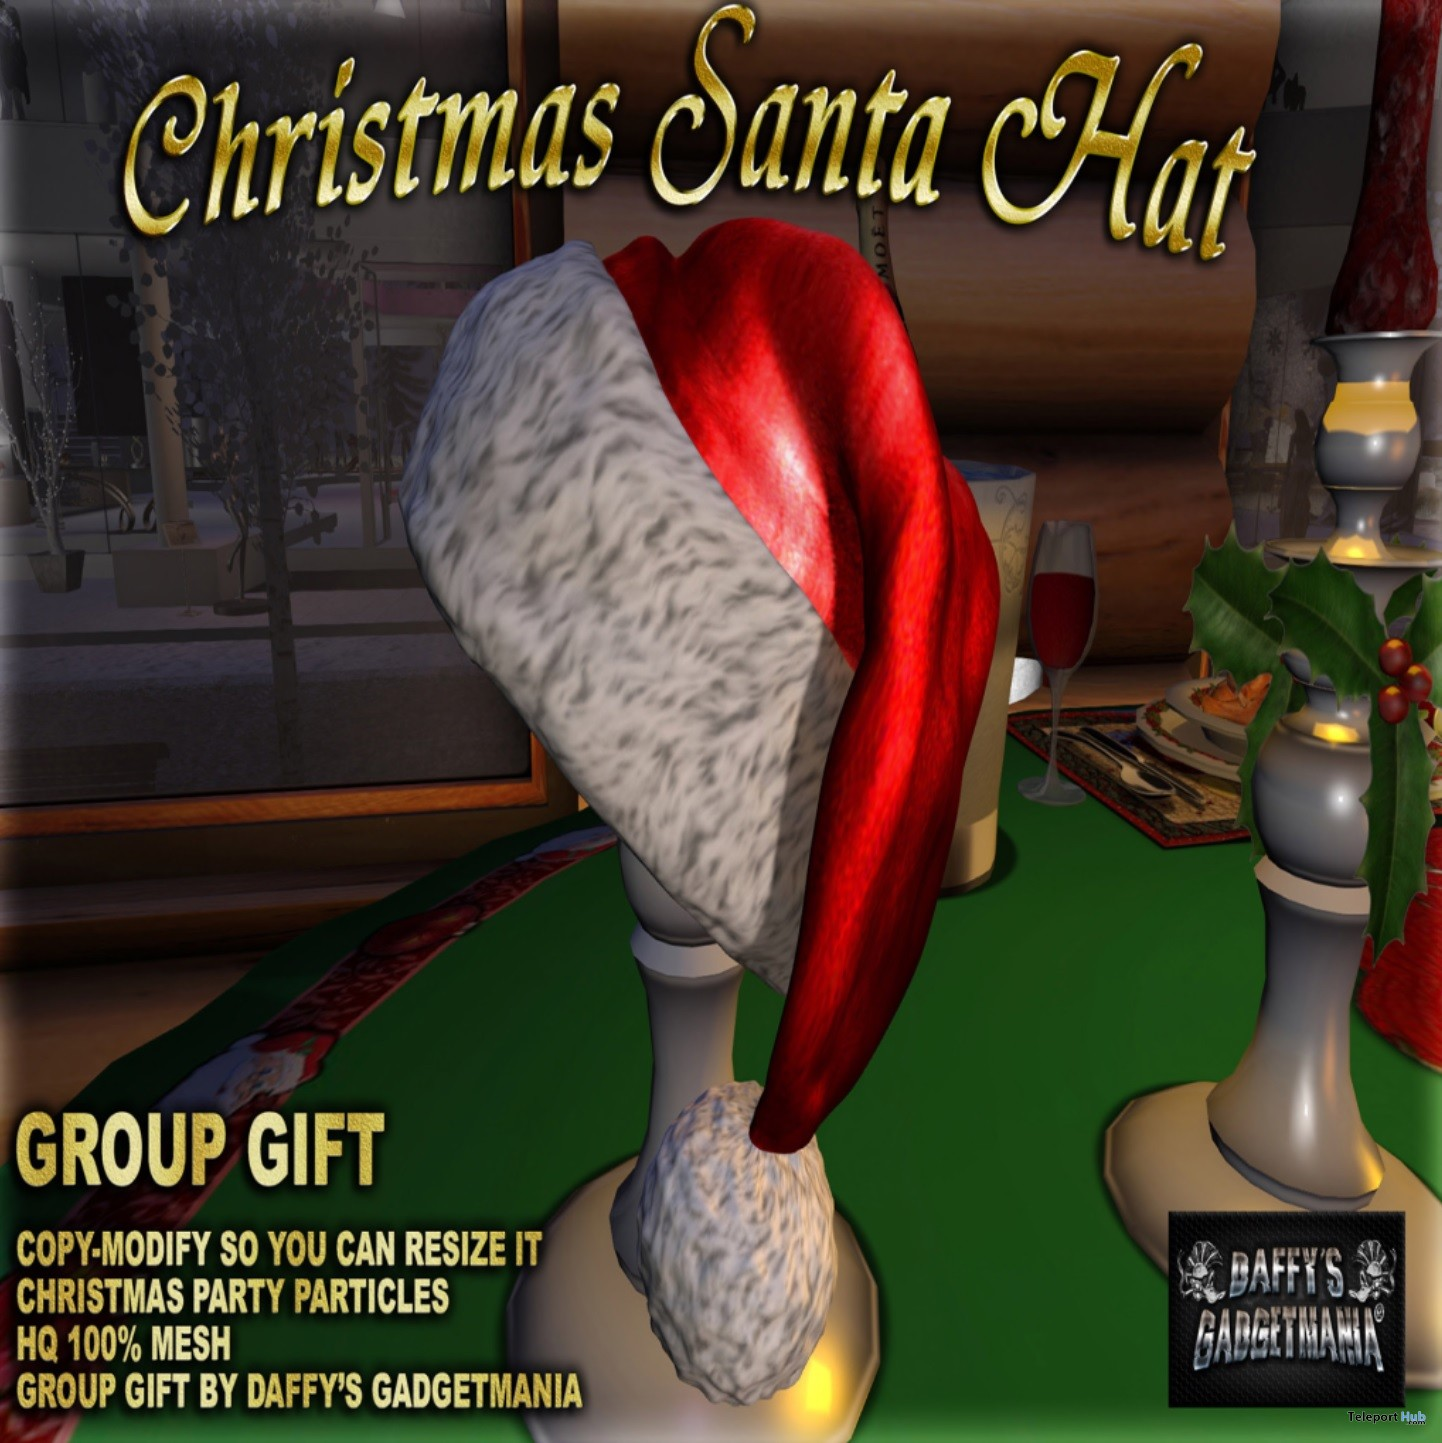 Santa Christmas Hat December 2018 Group Gift by Daffy's Gadgetmania - Teleport Hub - teleporthub.com